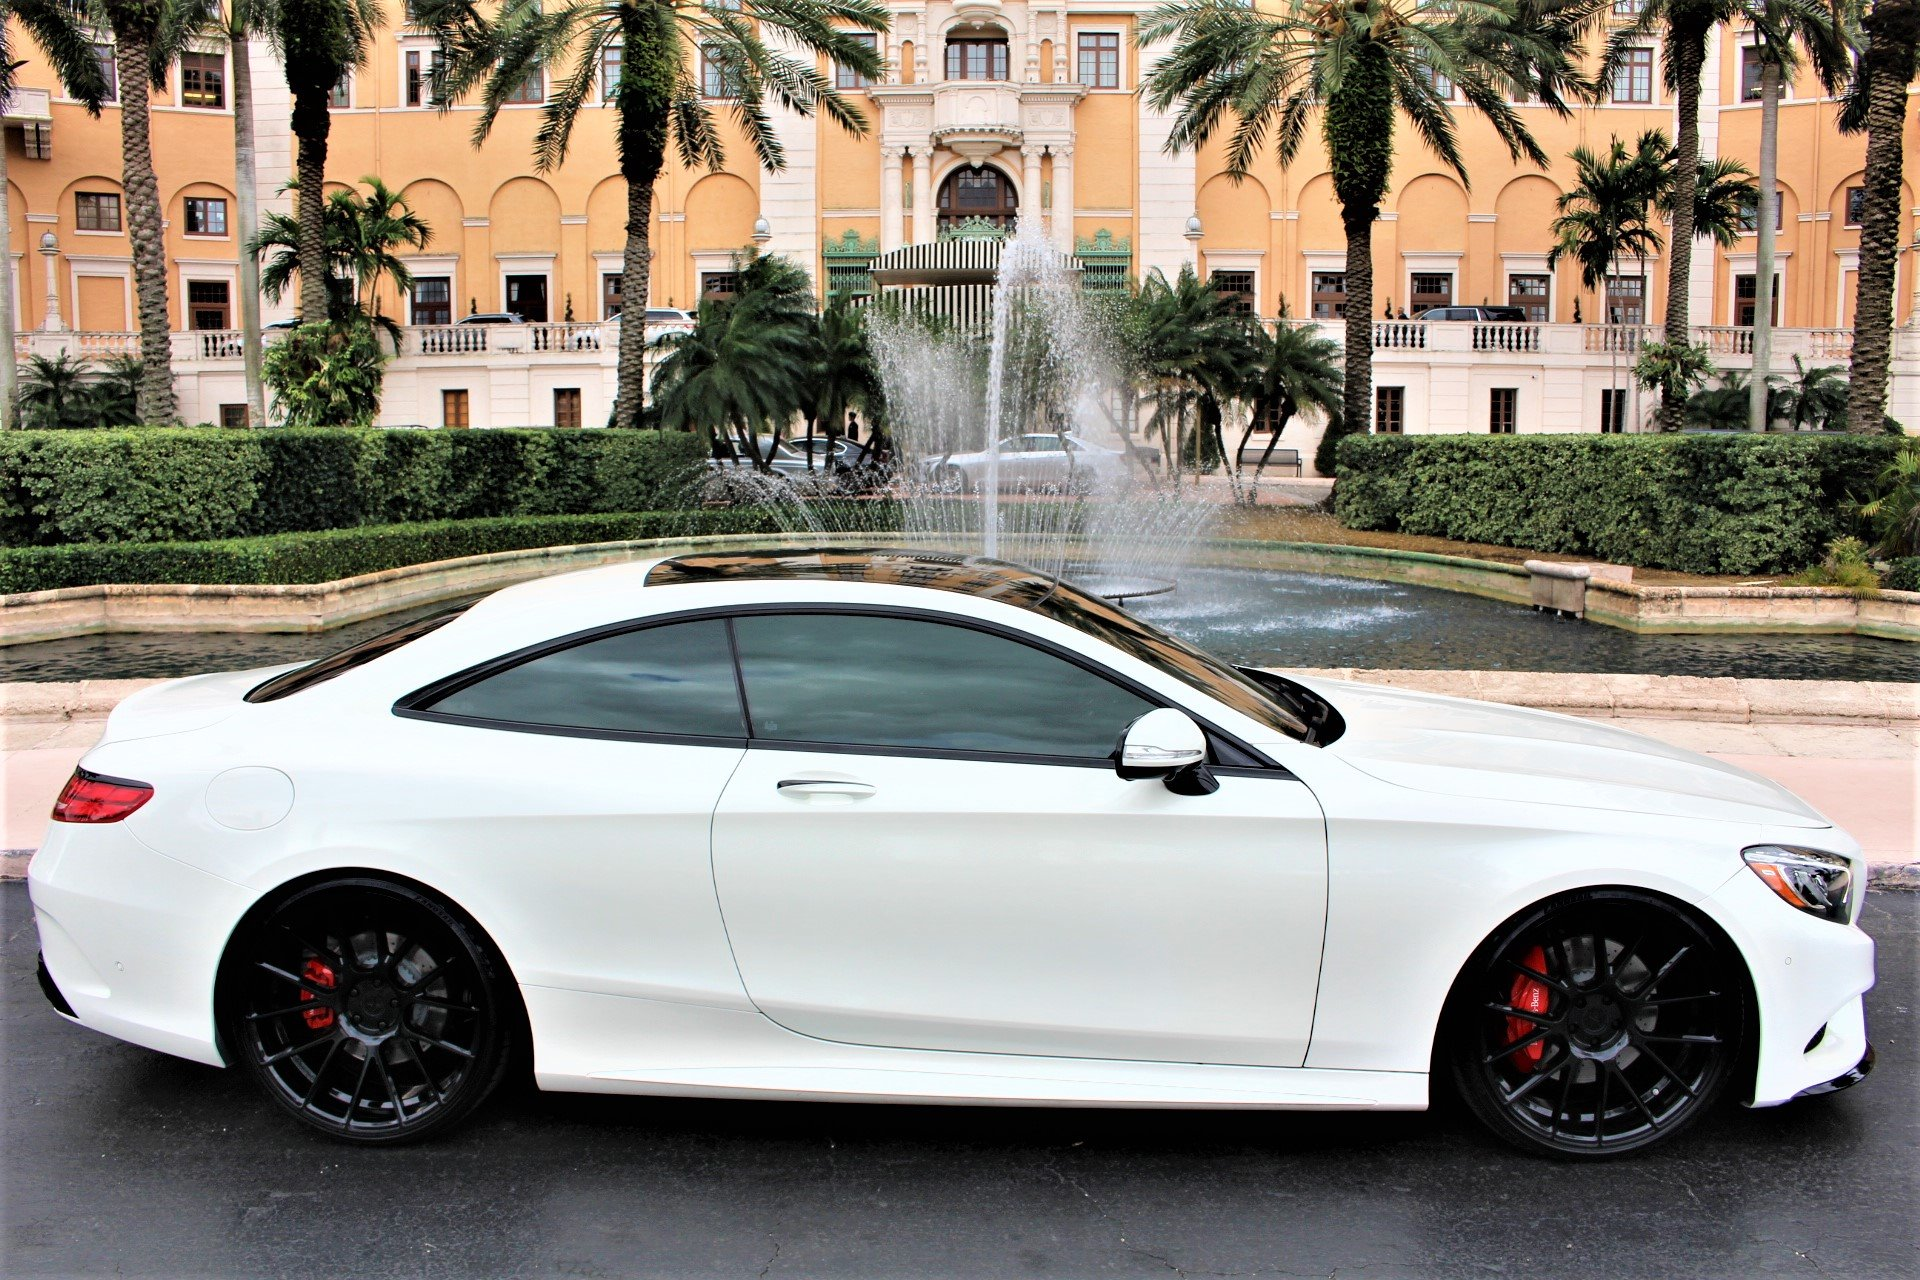 Used 2015 Mercedes-Benz S-Class S 550 4MATIC for sale Sold at The Gables Sports Cars in Miami FL 33146 2